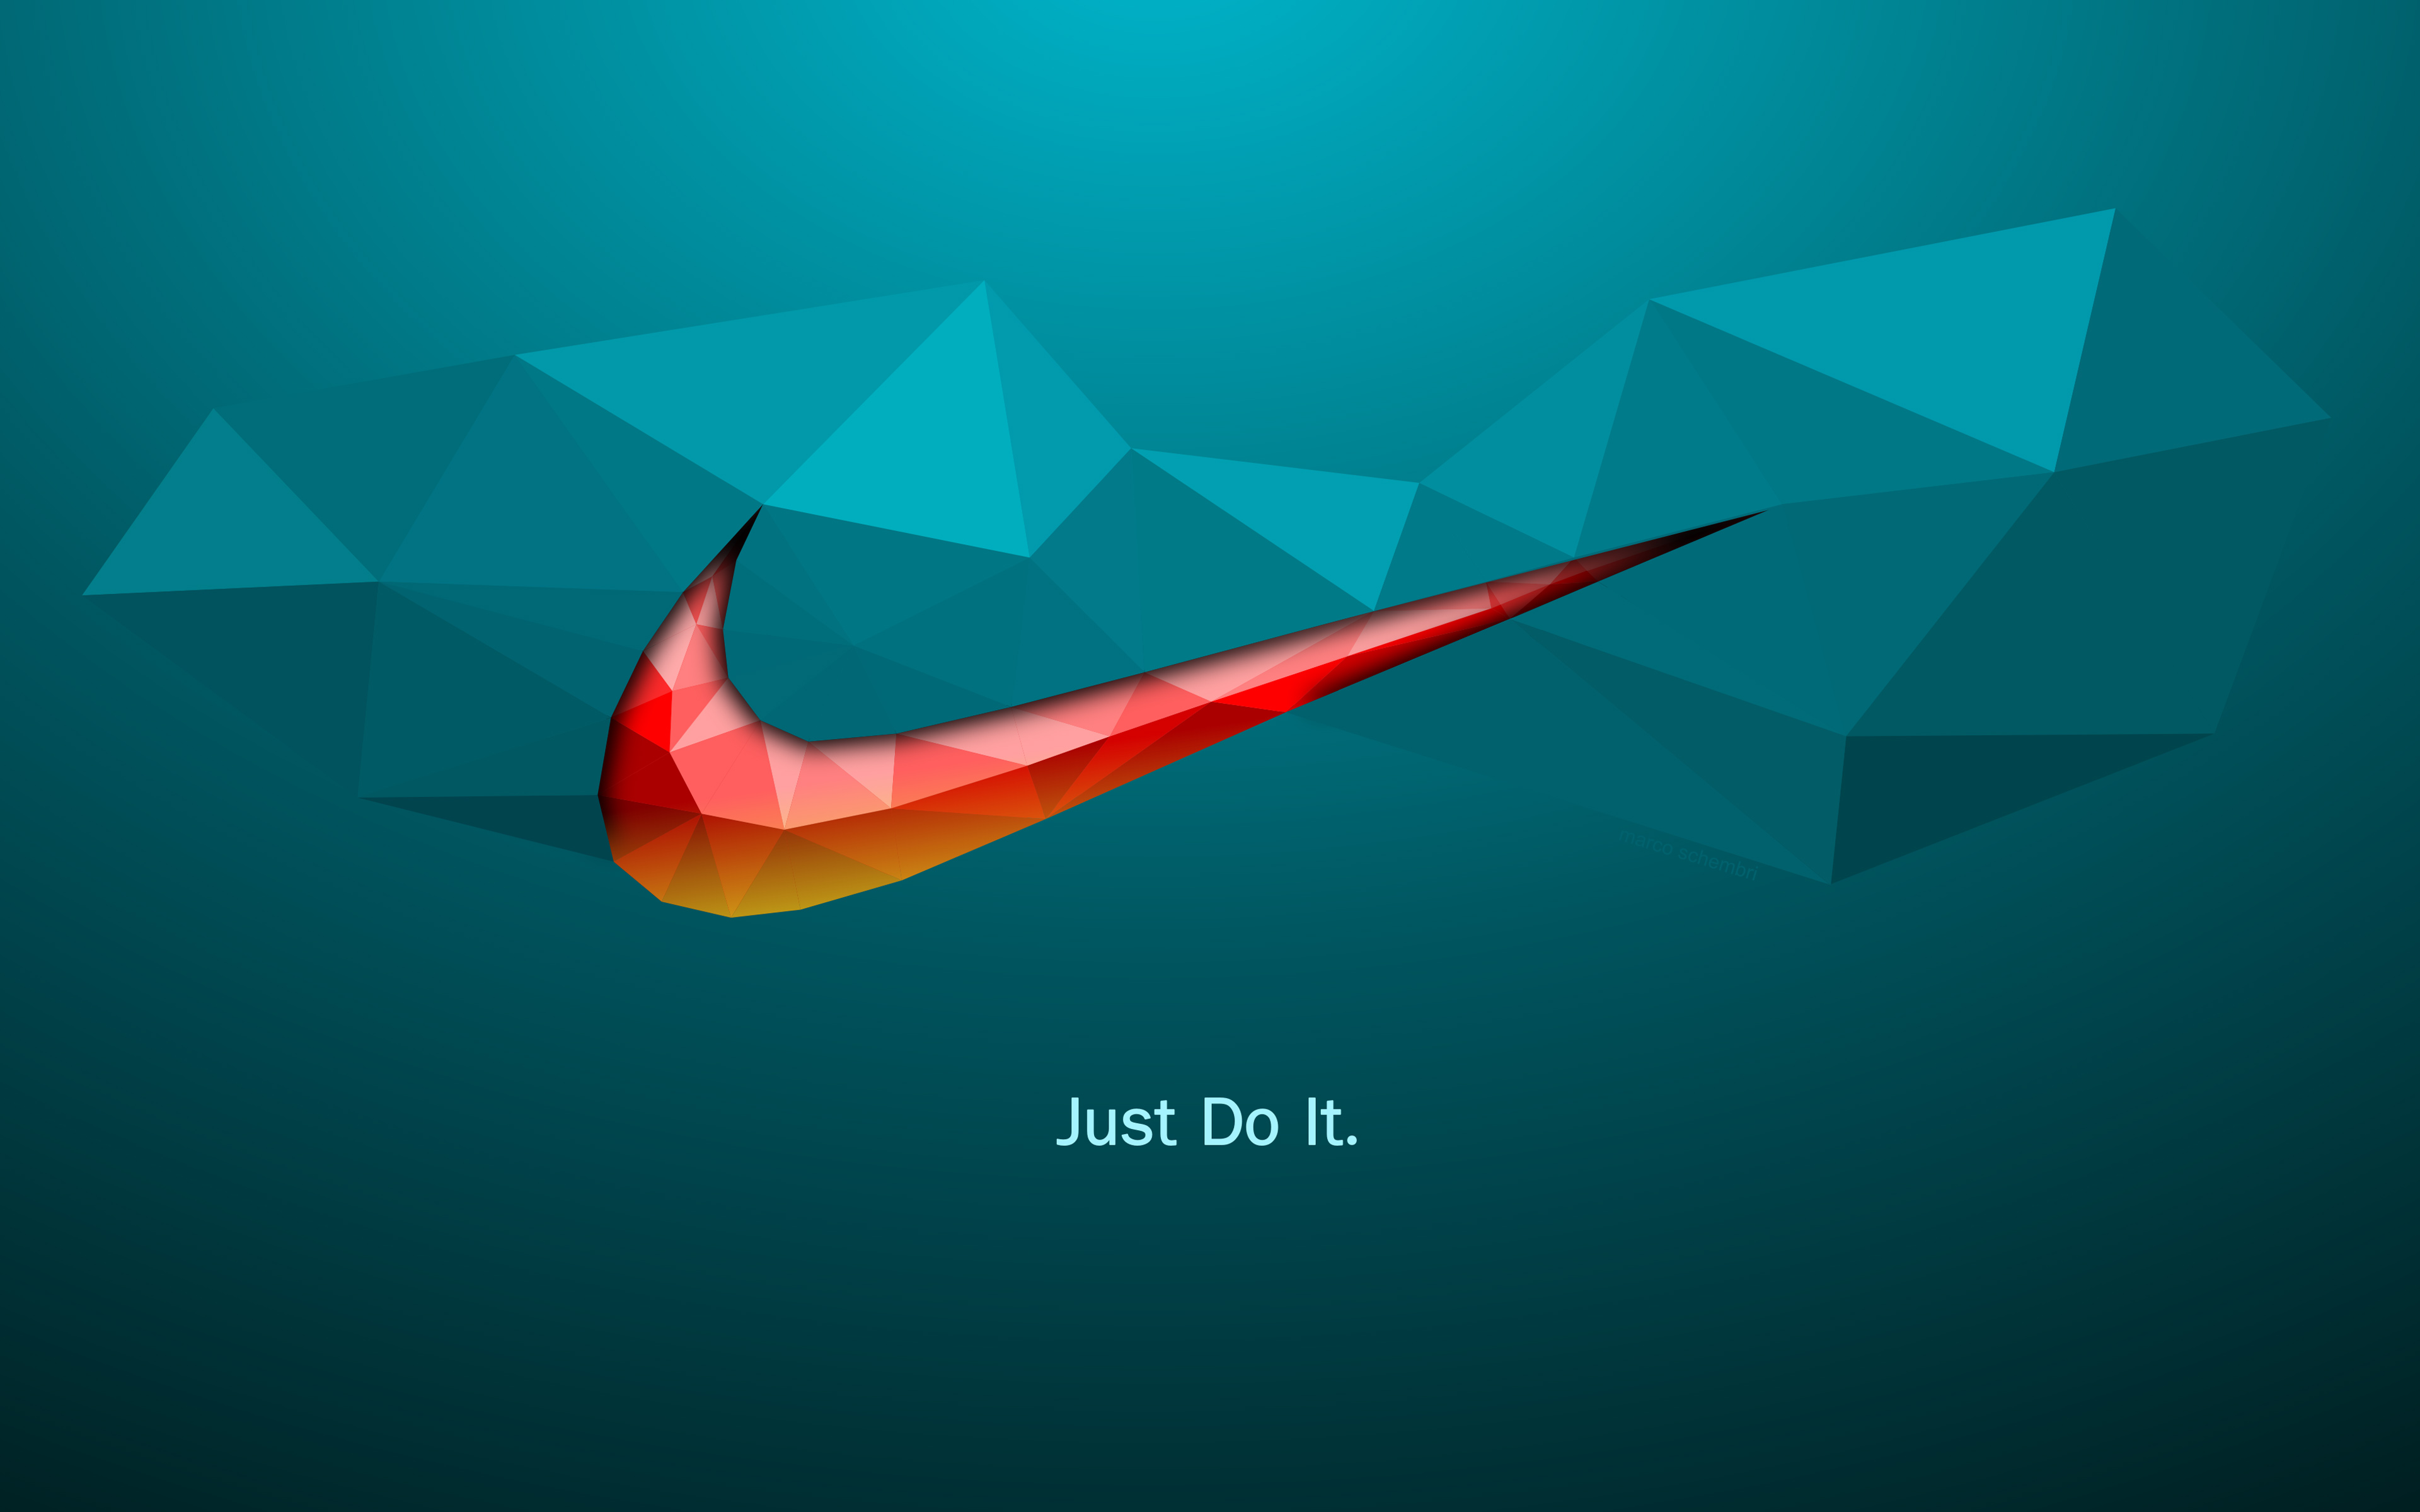 Just do it, quotes, Nike, logo, abstract